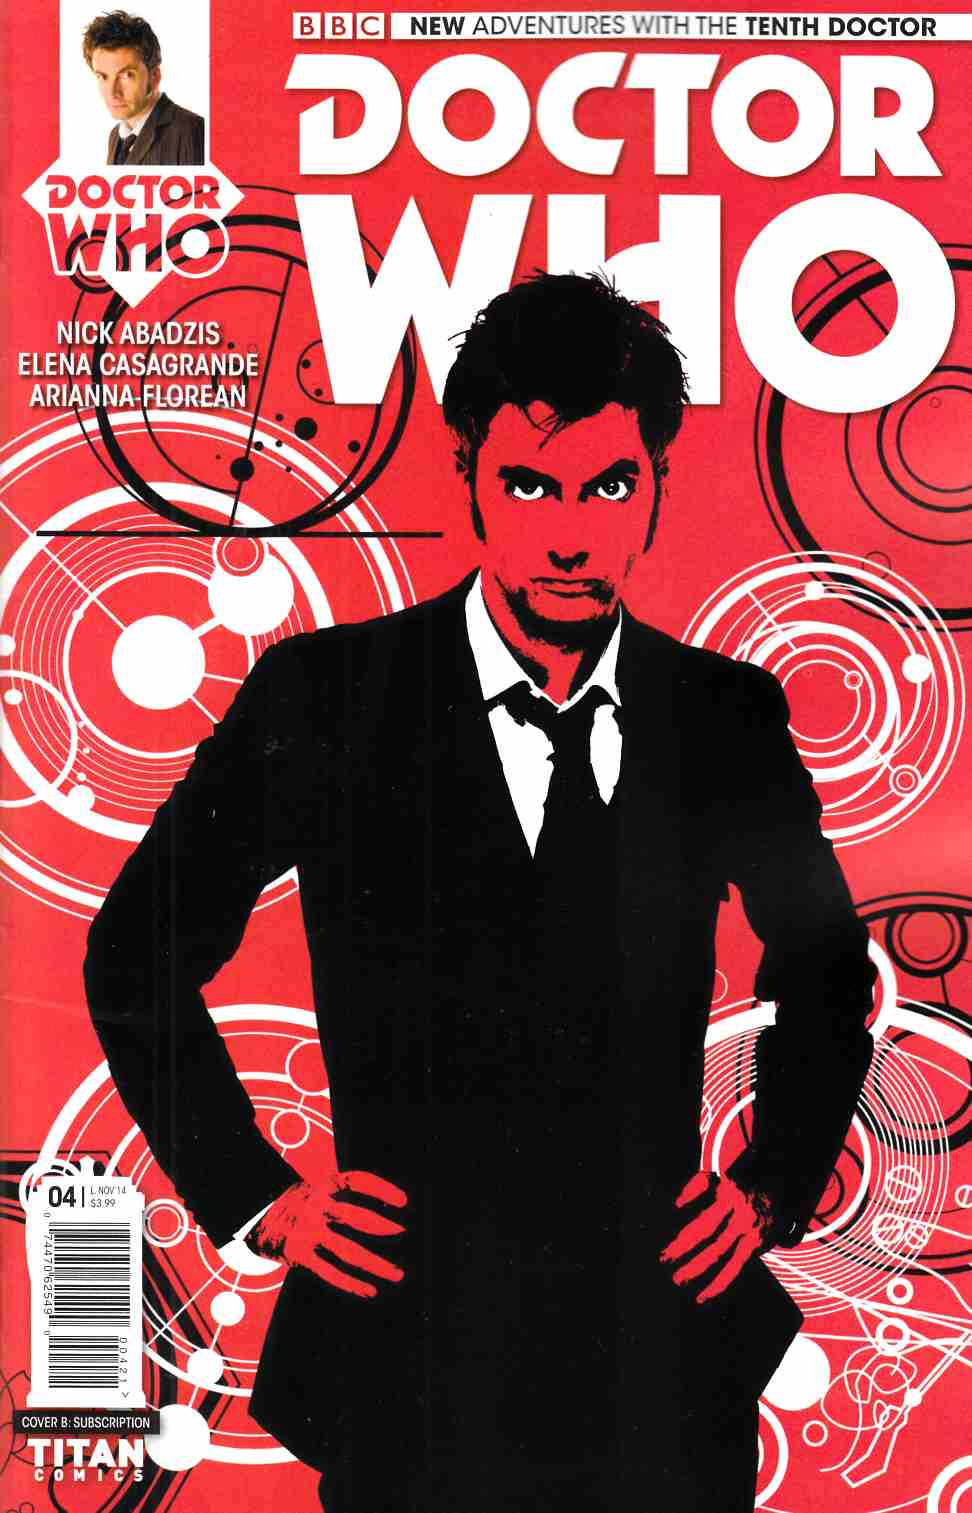 Doctor Who 10th Doctor #4 Subscription Photo Cover [Titan Comic]